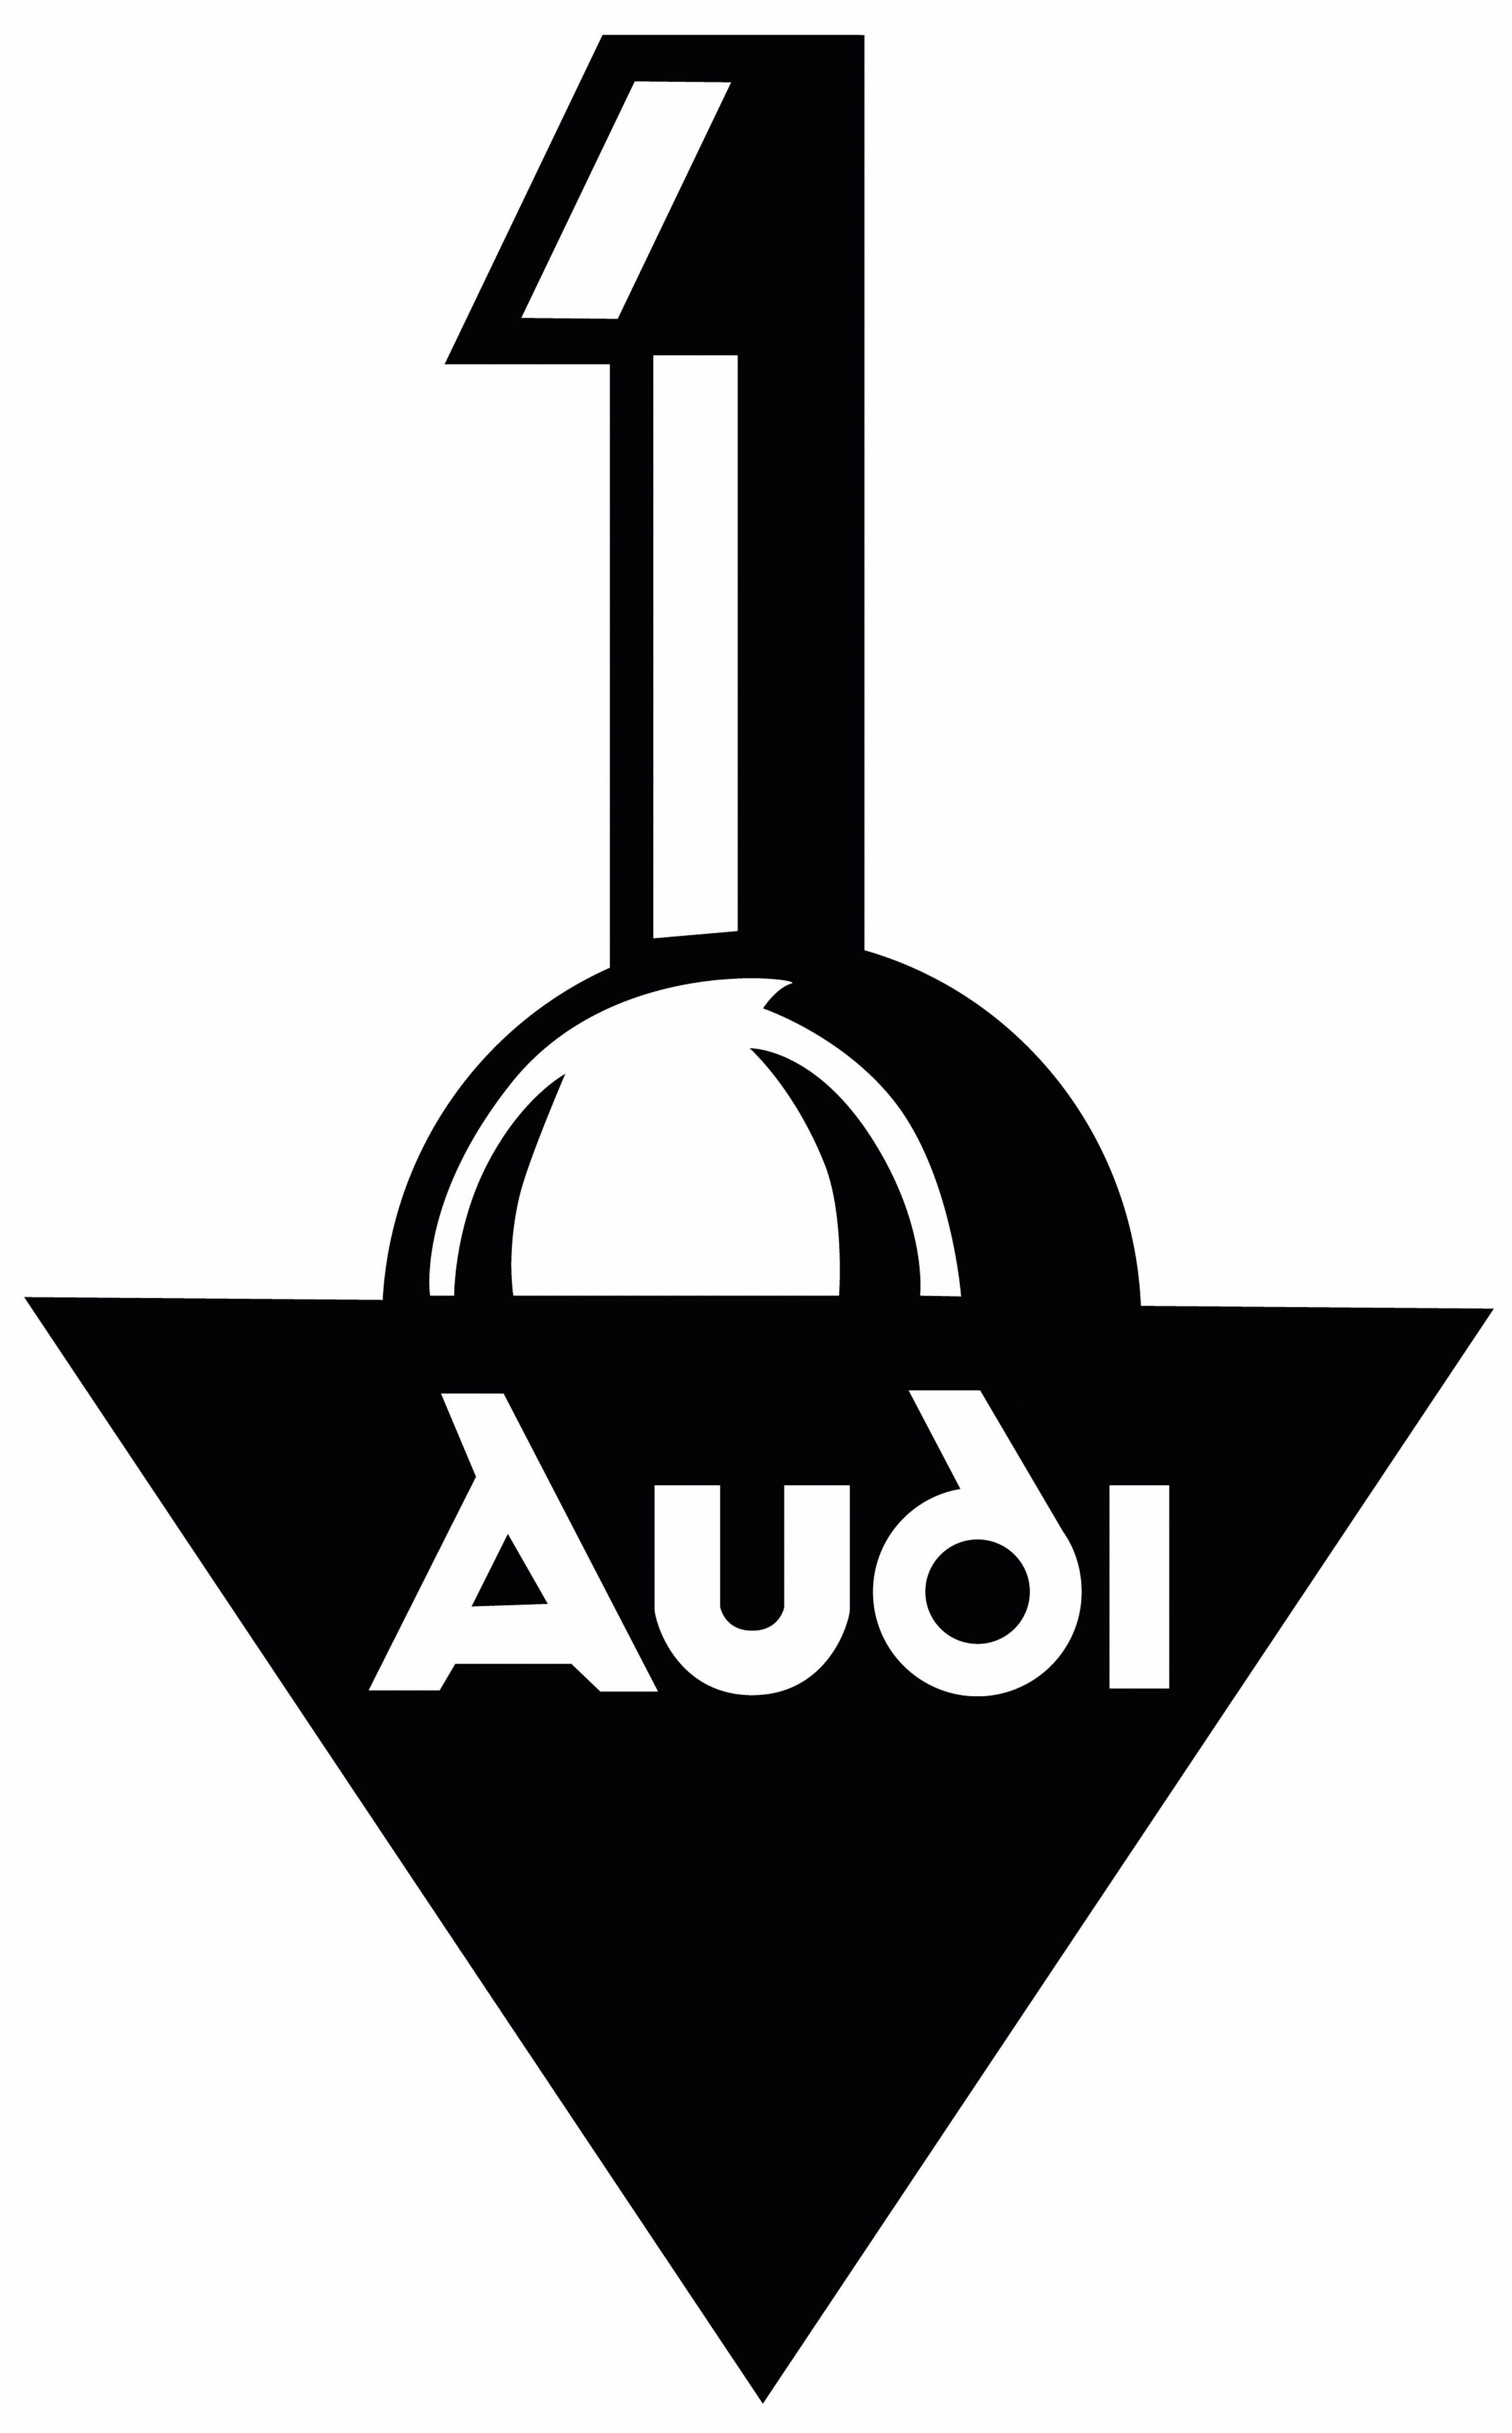 Audi In 1909 August Horch, after a disagreement with the